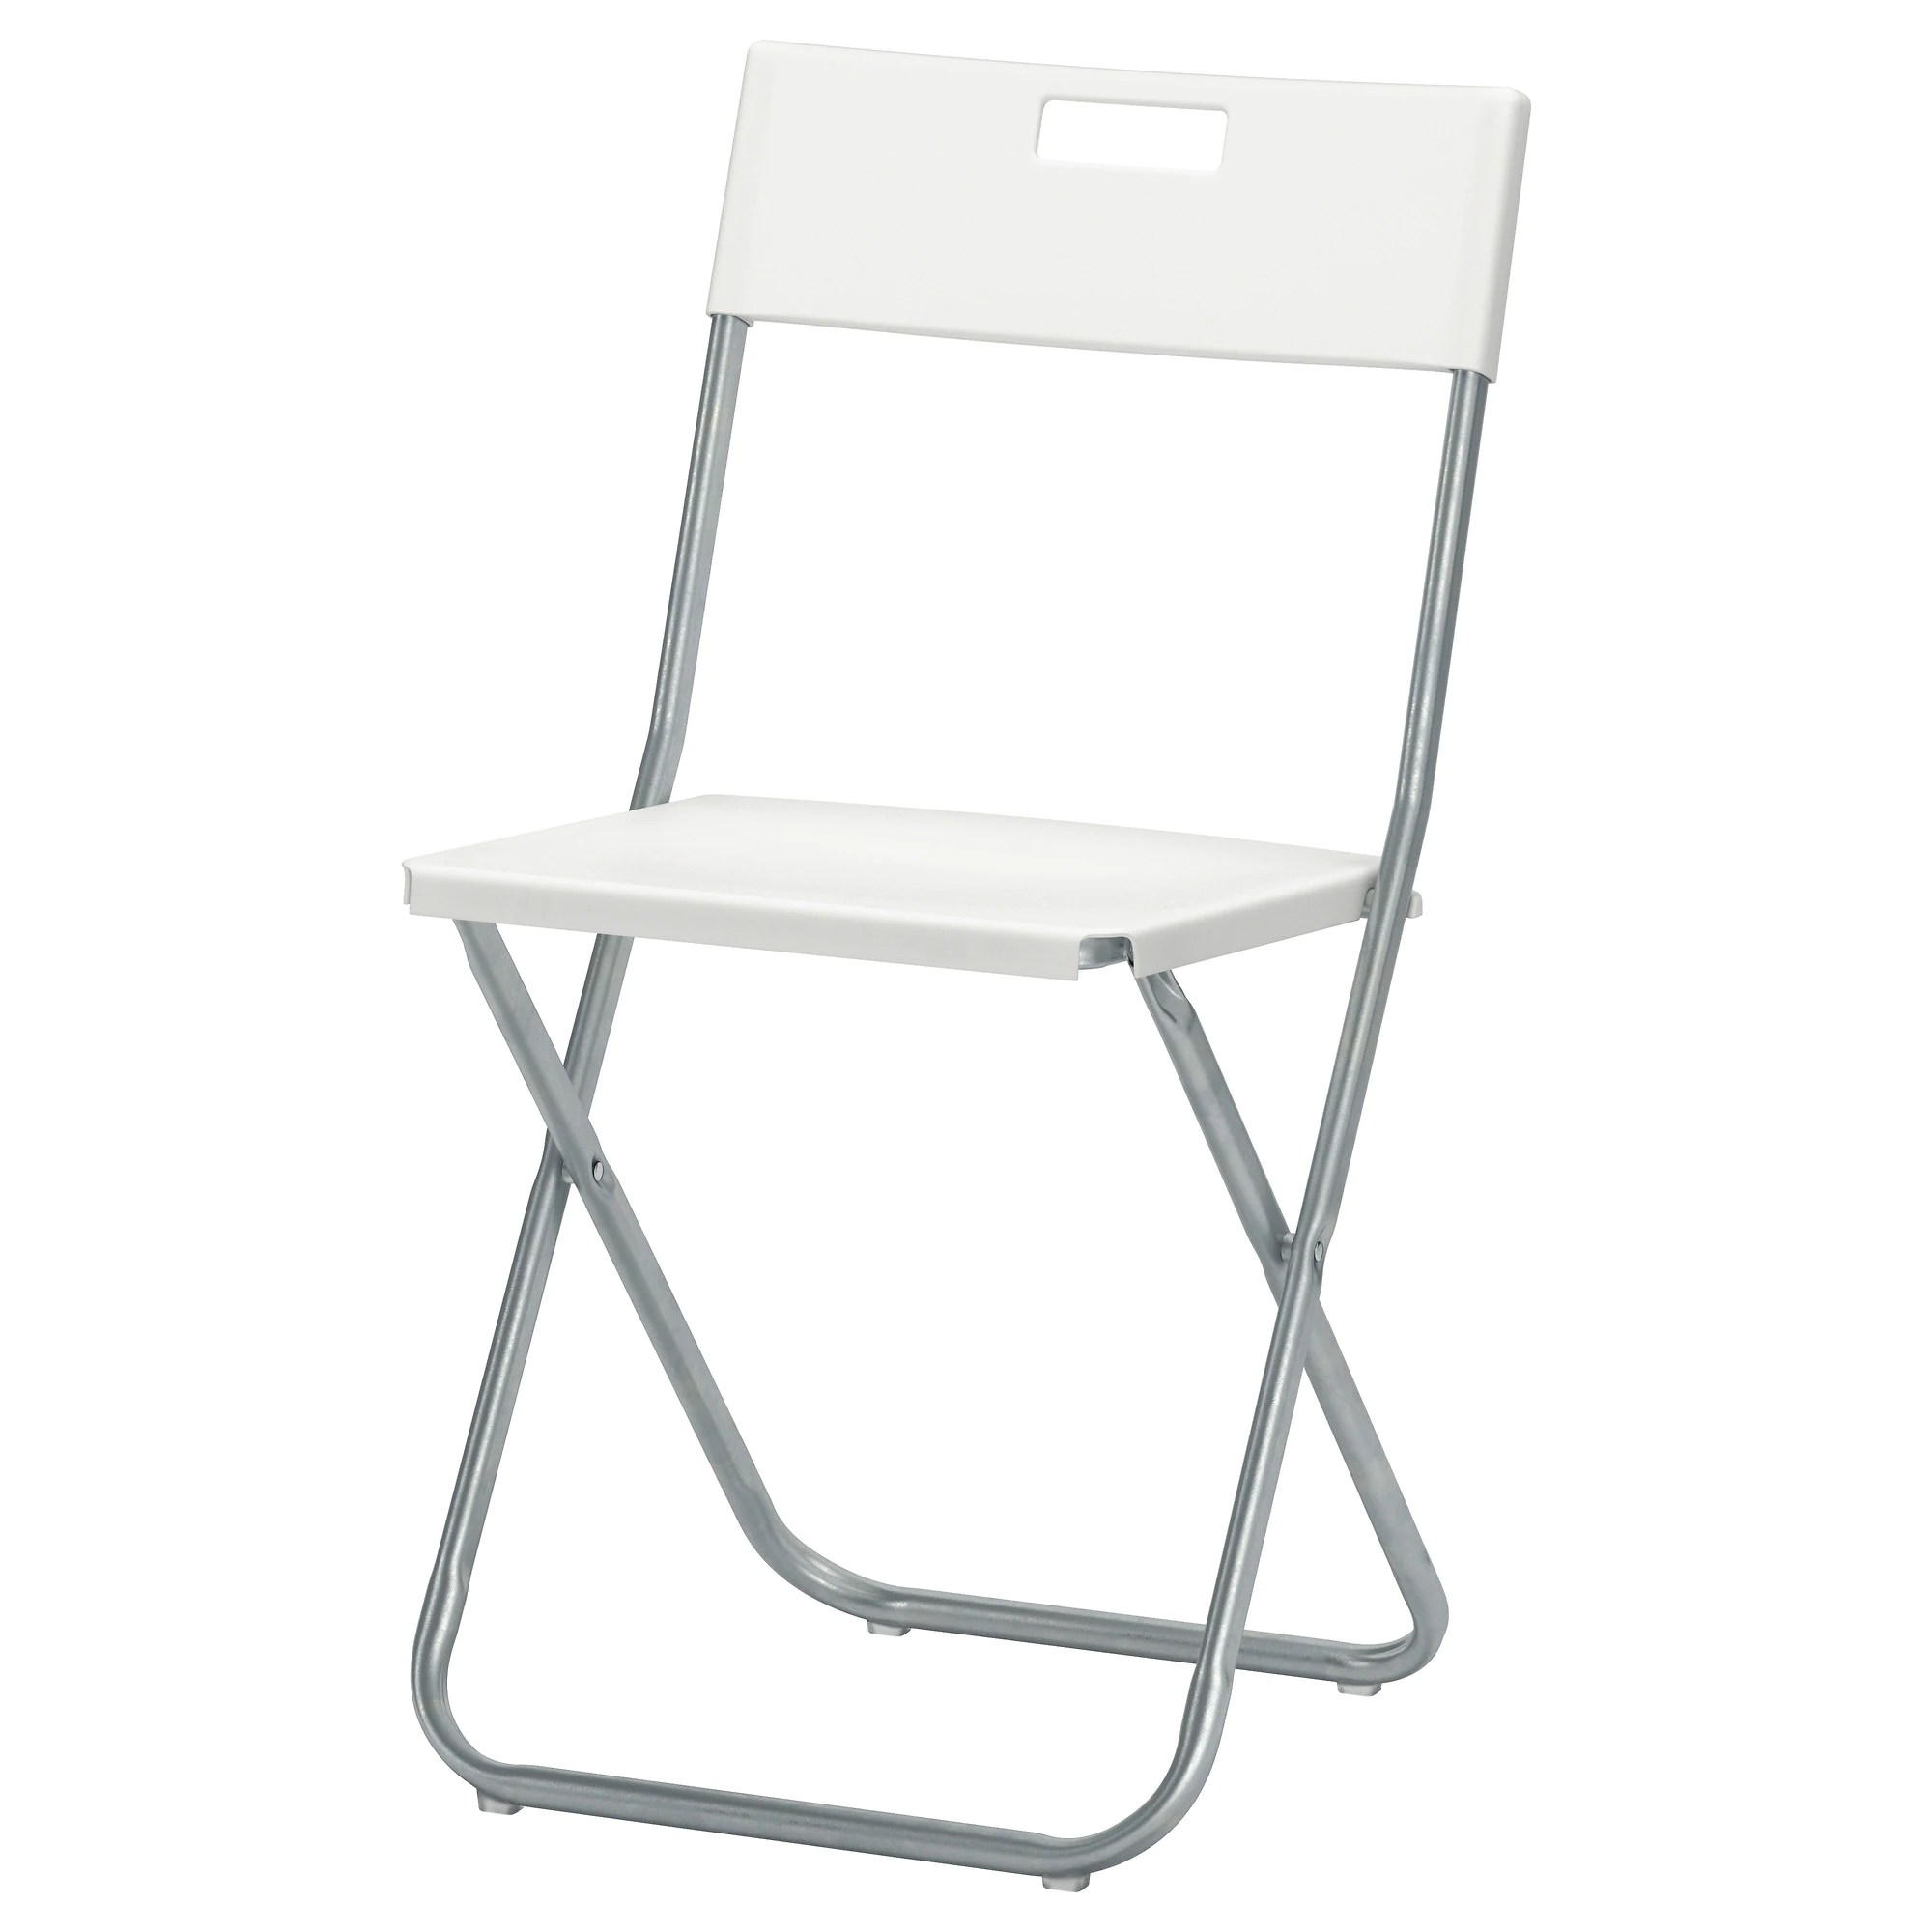 camp folding chairs lowes chair rack gunde ikea feedback